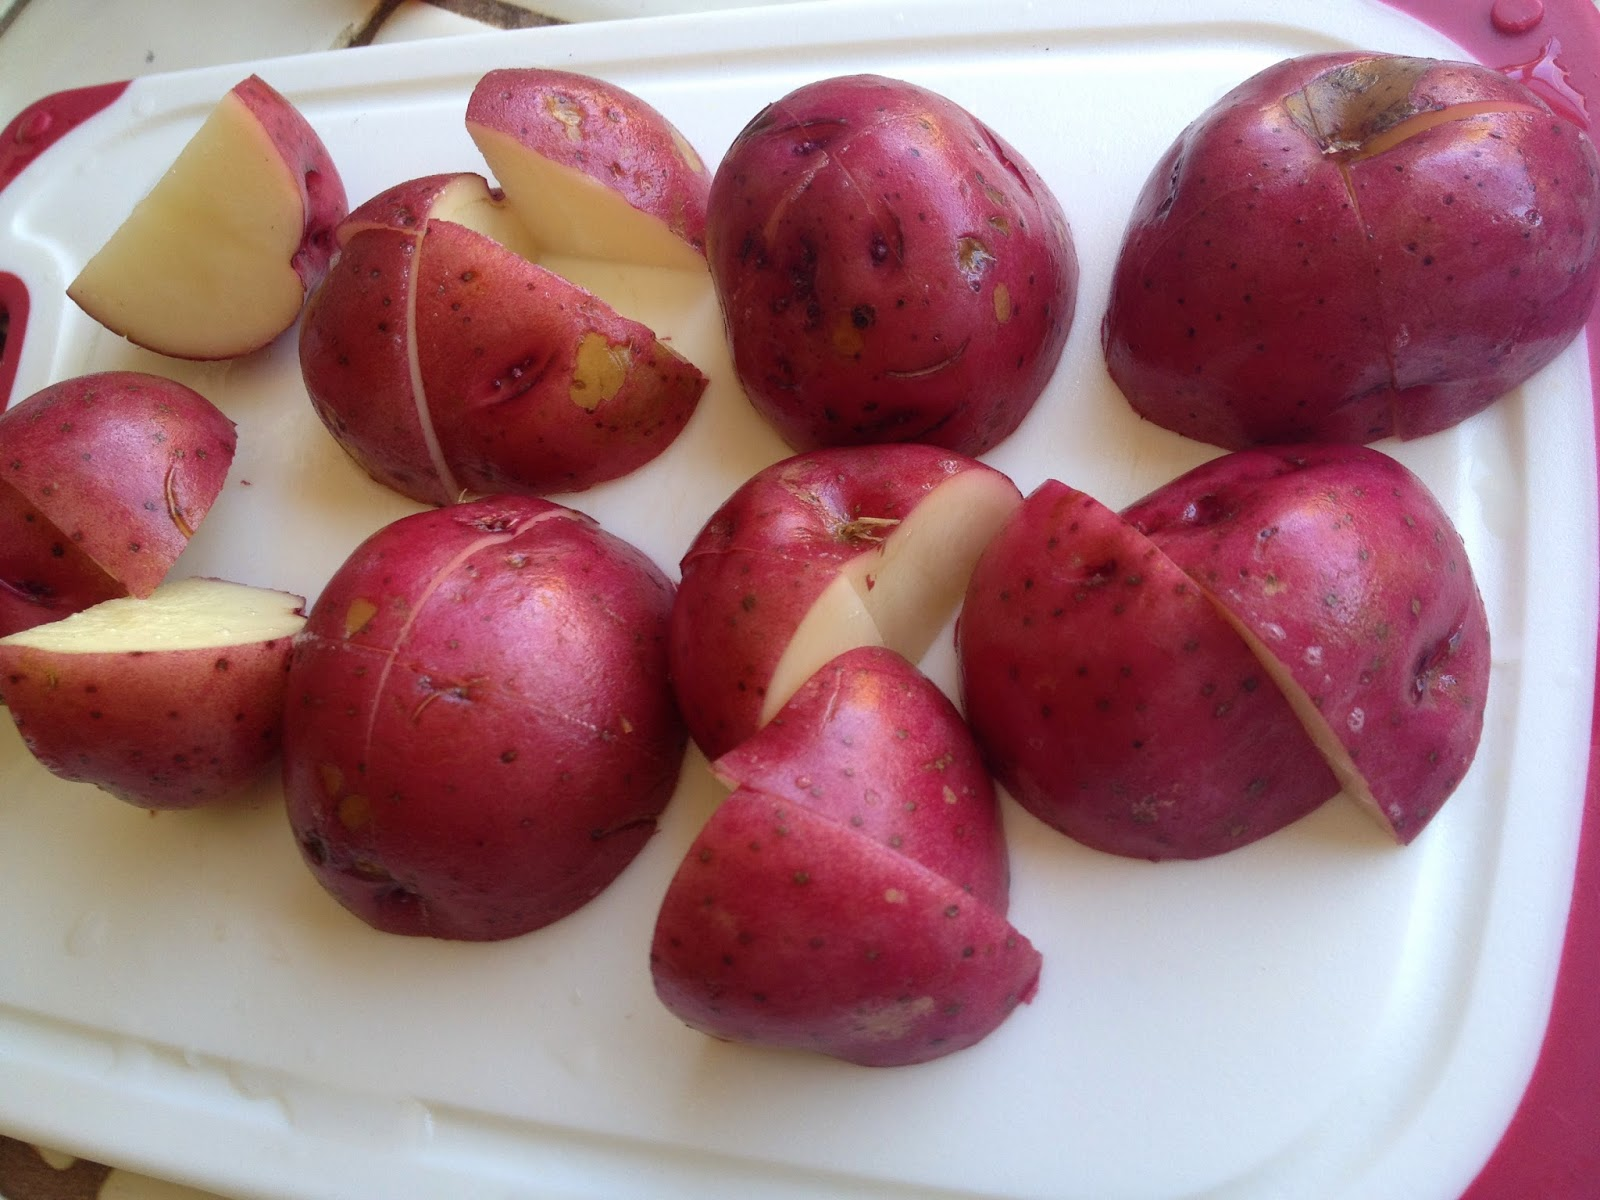 red potatoes fresh cut